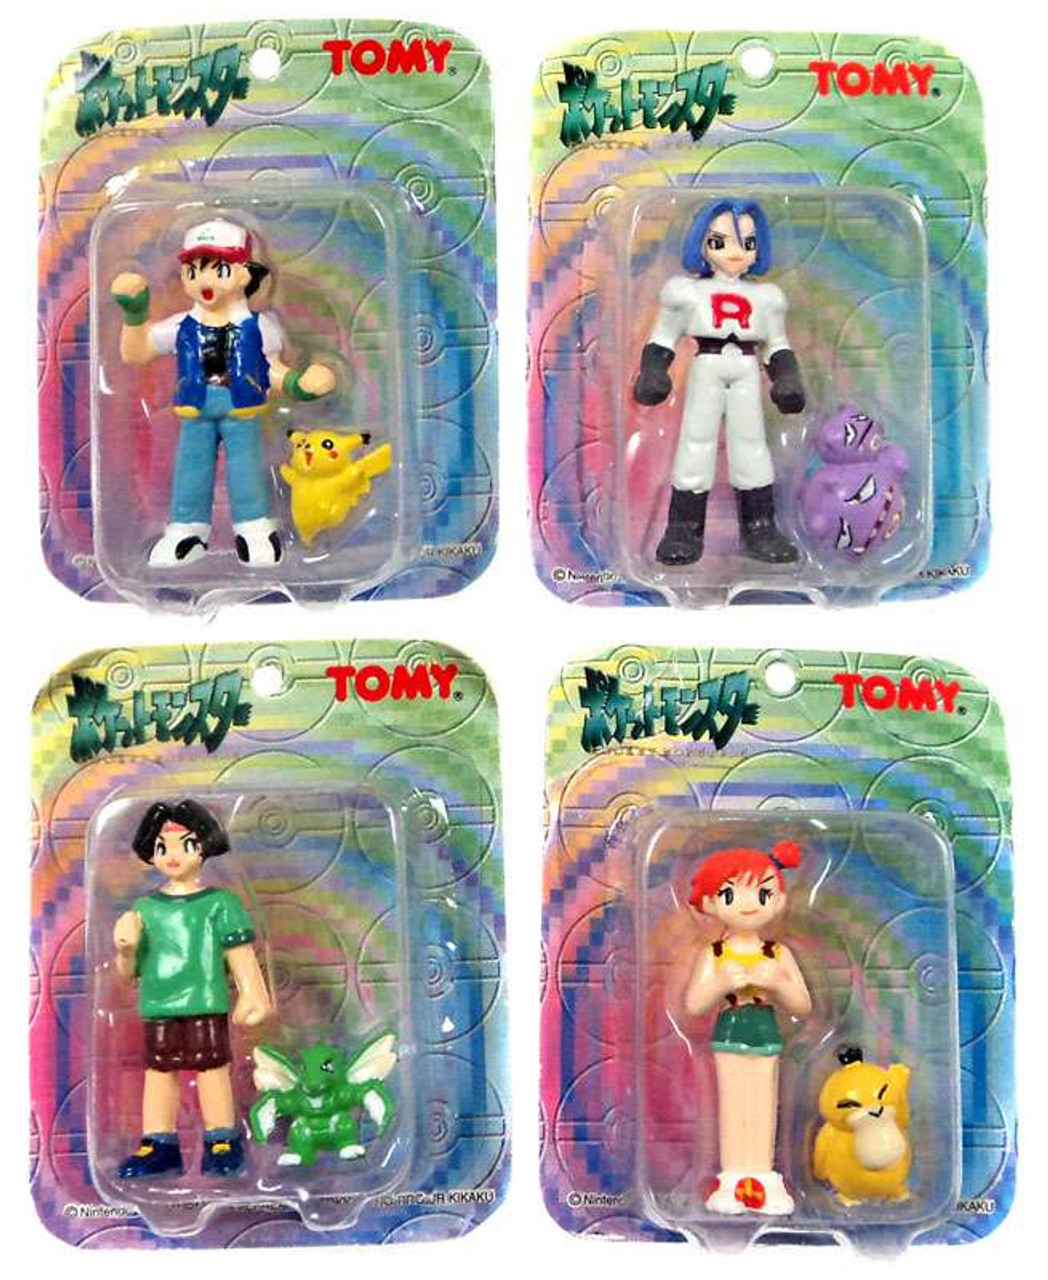 Dragon Ball Z Set of 4 Micro Figures